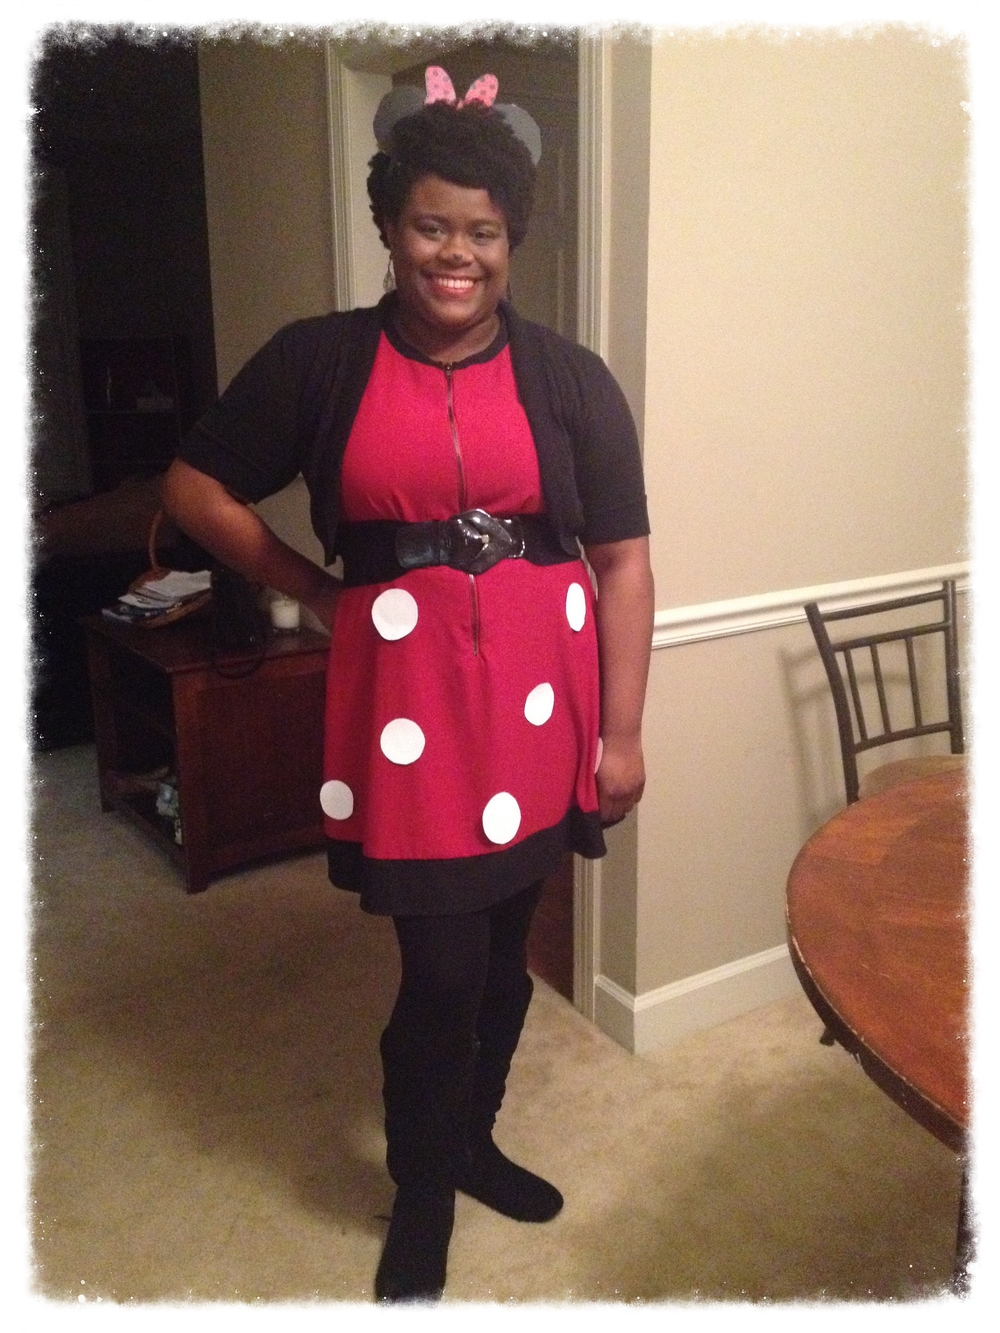 Minnie Mouse costume for Halloween 2015